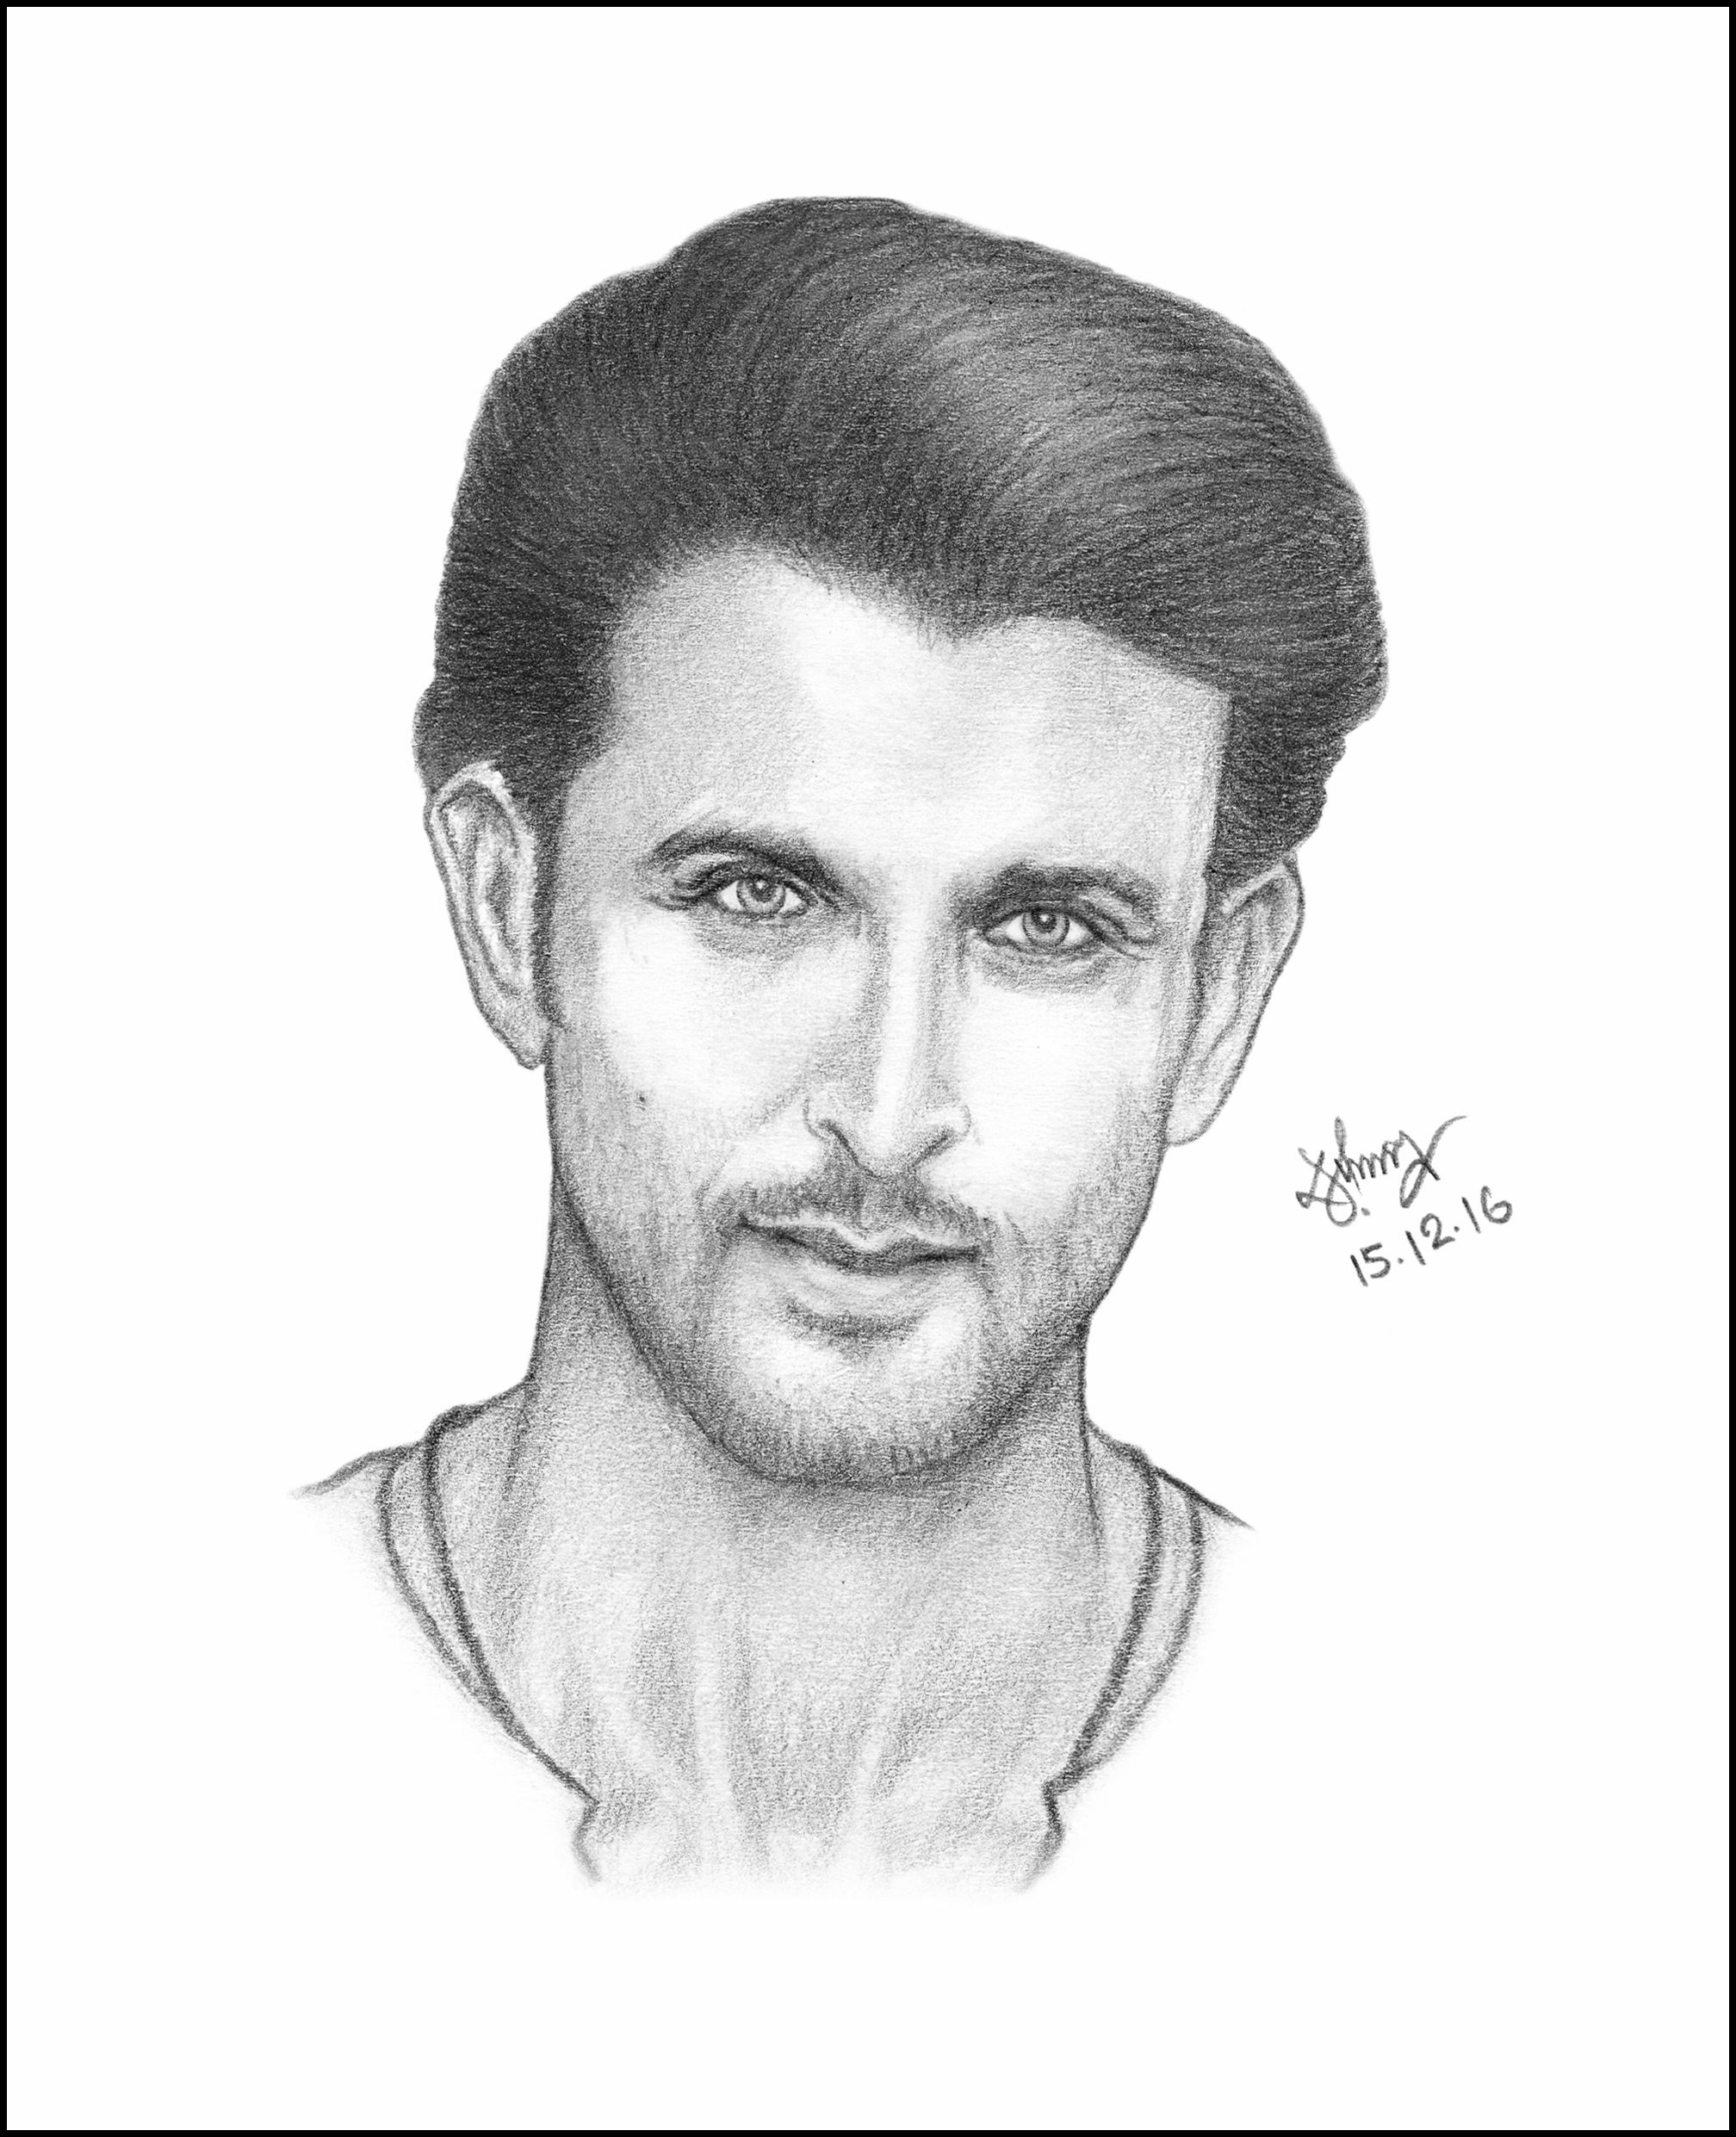 shahrukh khan coloring pages | Cristiano Ronaldo Coloring Pages Aryan Desene